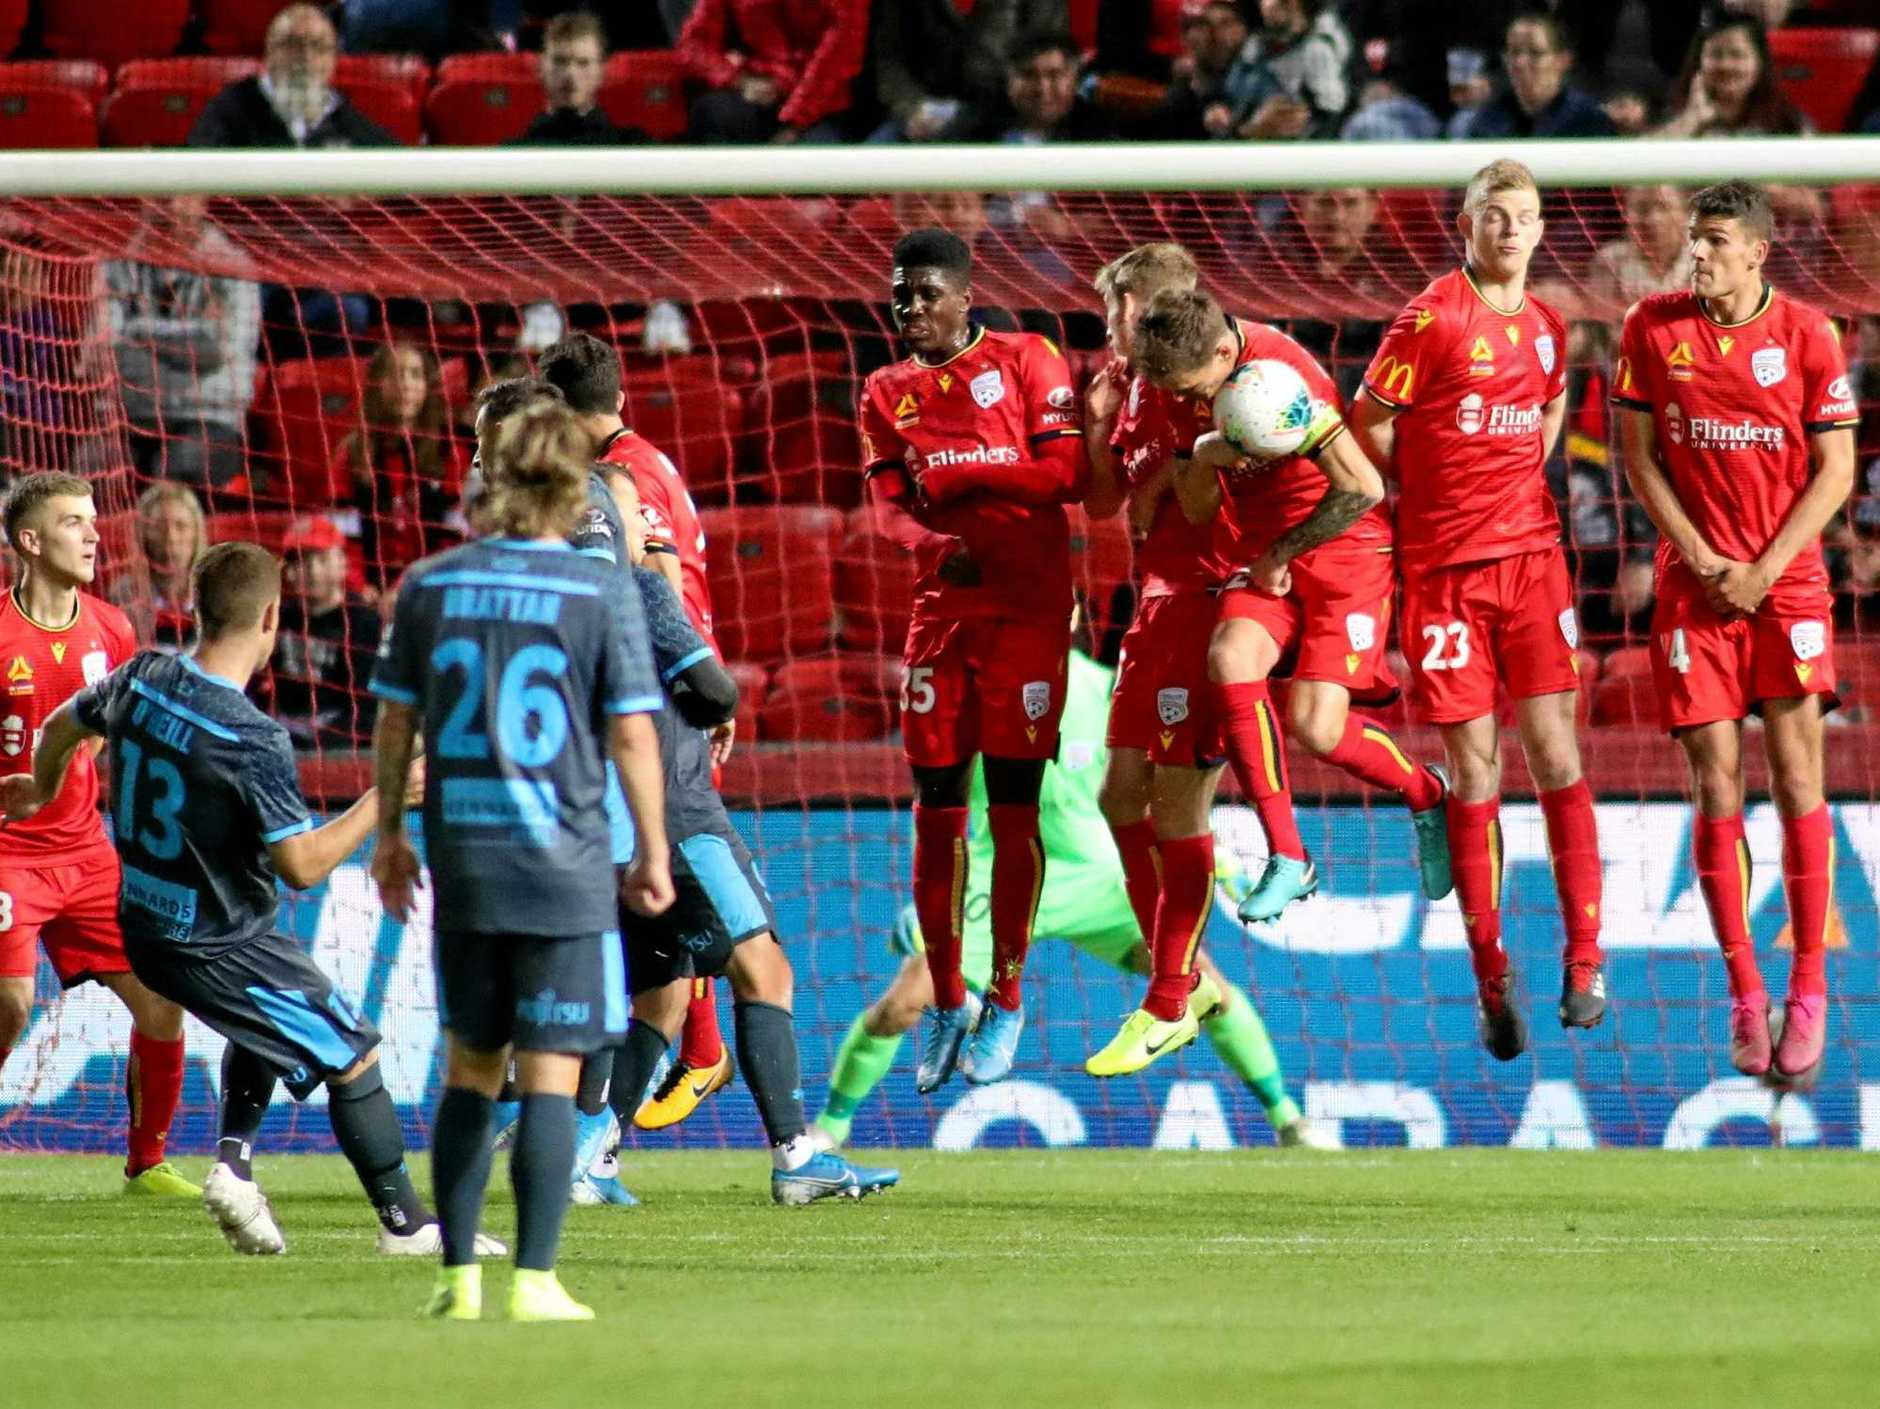 Adelaide United players stop a Sydney FC penalty shot at goal at Adelaide's Coopers Stadium on Friday night. Picture: Kelly Barnes/AAP